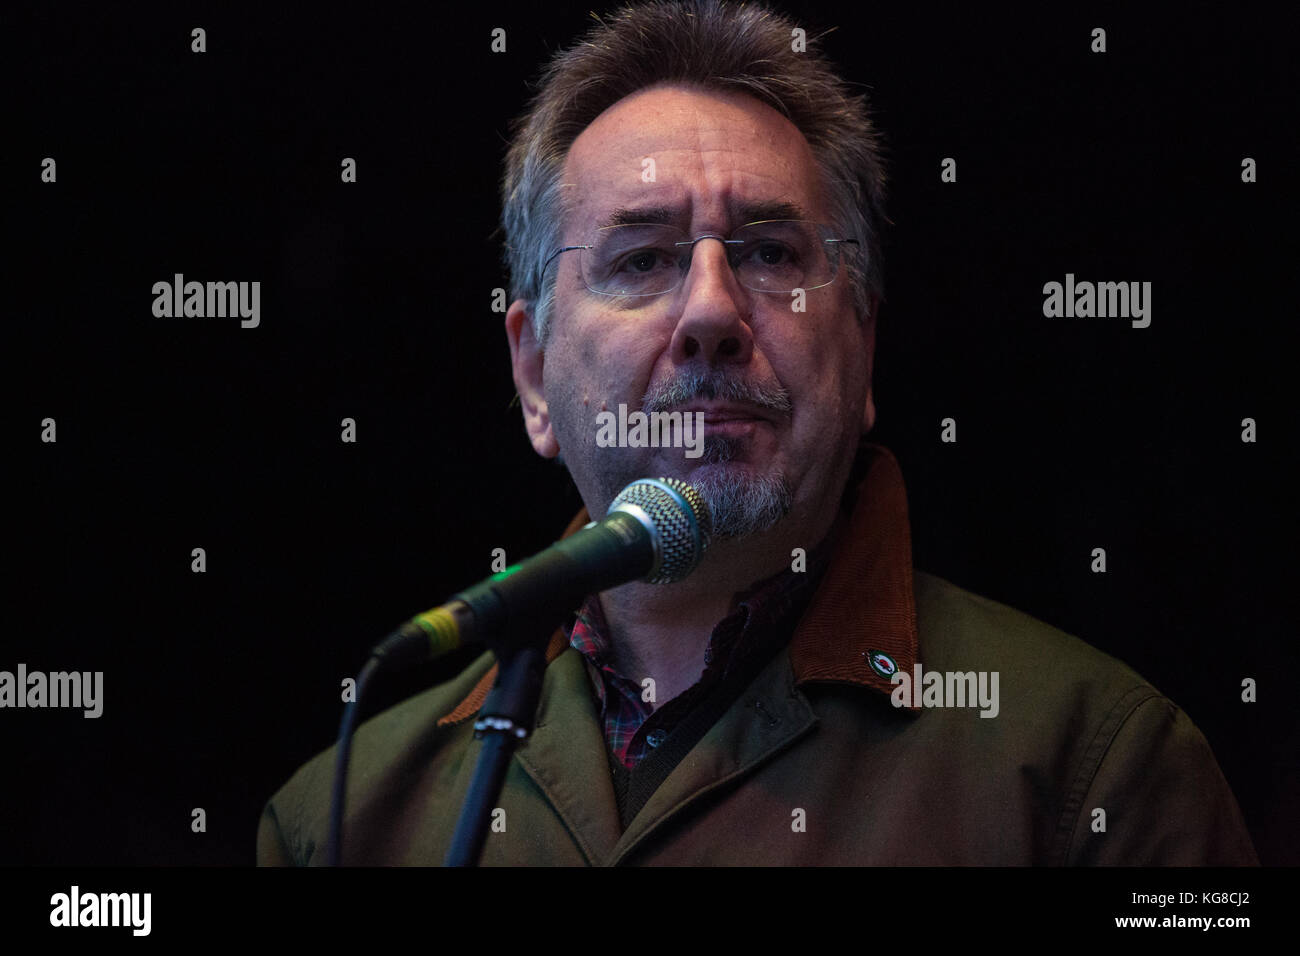 London, UK. 4th November, 2017. John Rees, broadcaster, writer and national officer of Stop The War Coalition, addresses Stock Photo